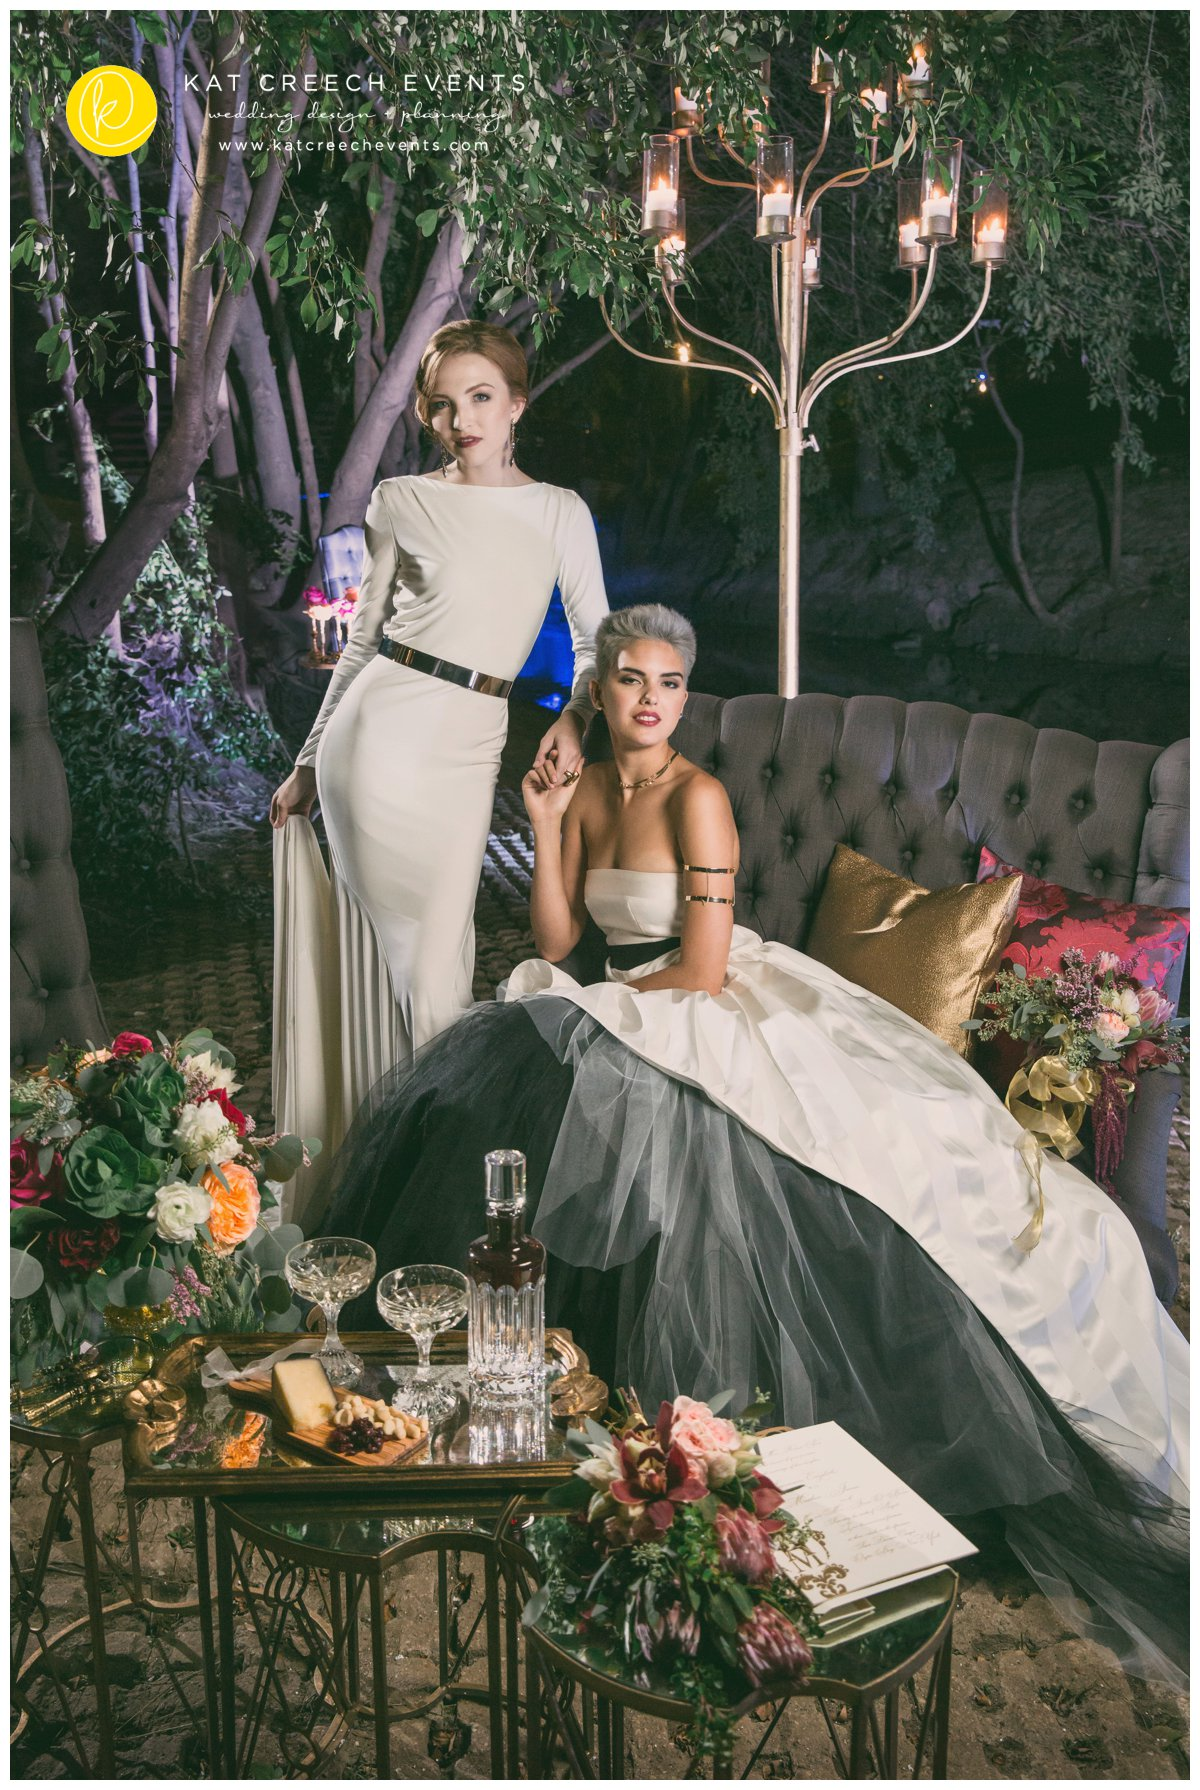 love wins | lgbt wedding | marriage equality |wedding dresses | tufted lounge | candelabra | romance on the bayou |kat creech events | wedding stylist